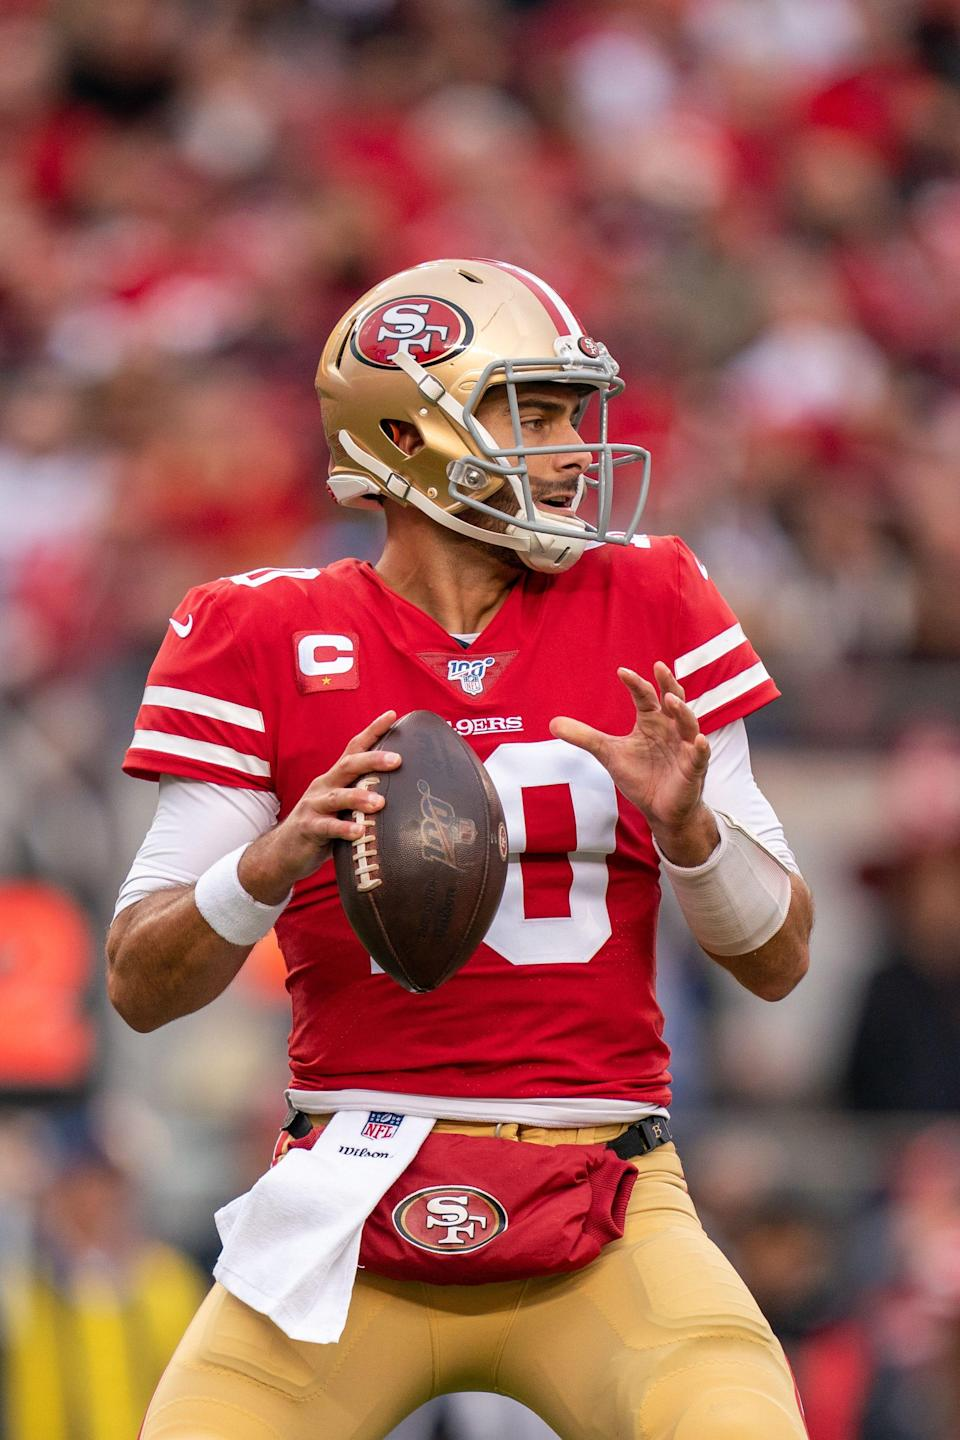 San Francisco 49ers quarterback Jimmy Garoppolo's stock has dropped precipitously since starting NFC title game in January 2020. The 49ers used the No. 3 overall pick on his eventual replacement, Trey Lance of North Dakota State.